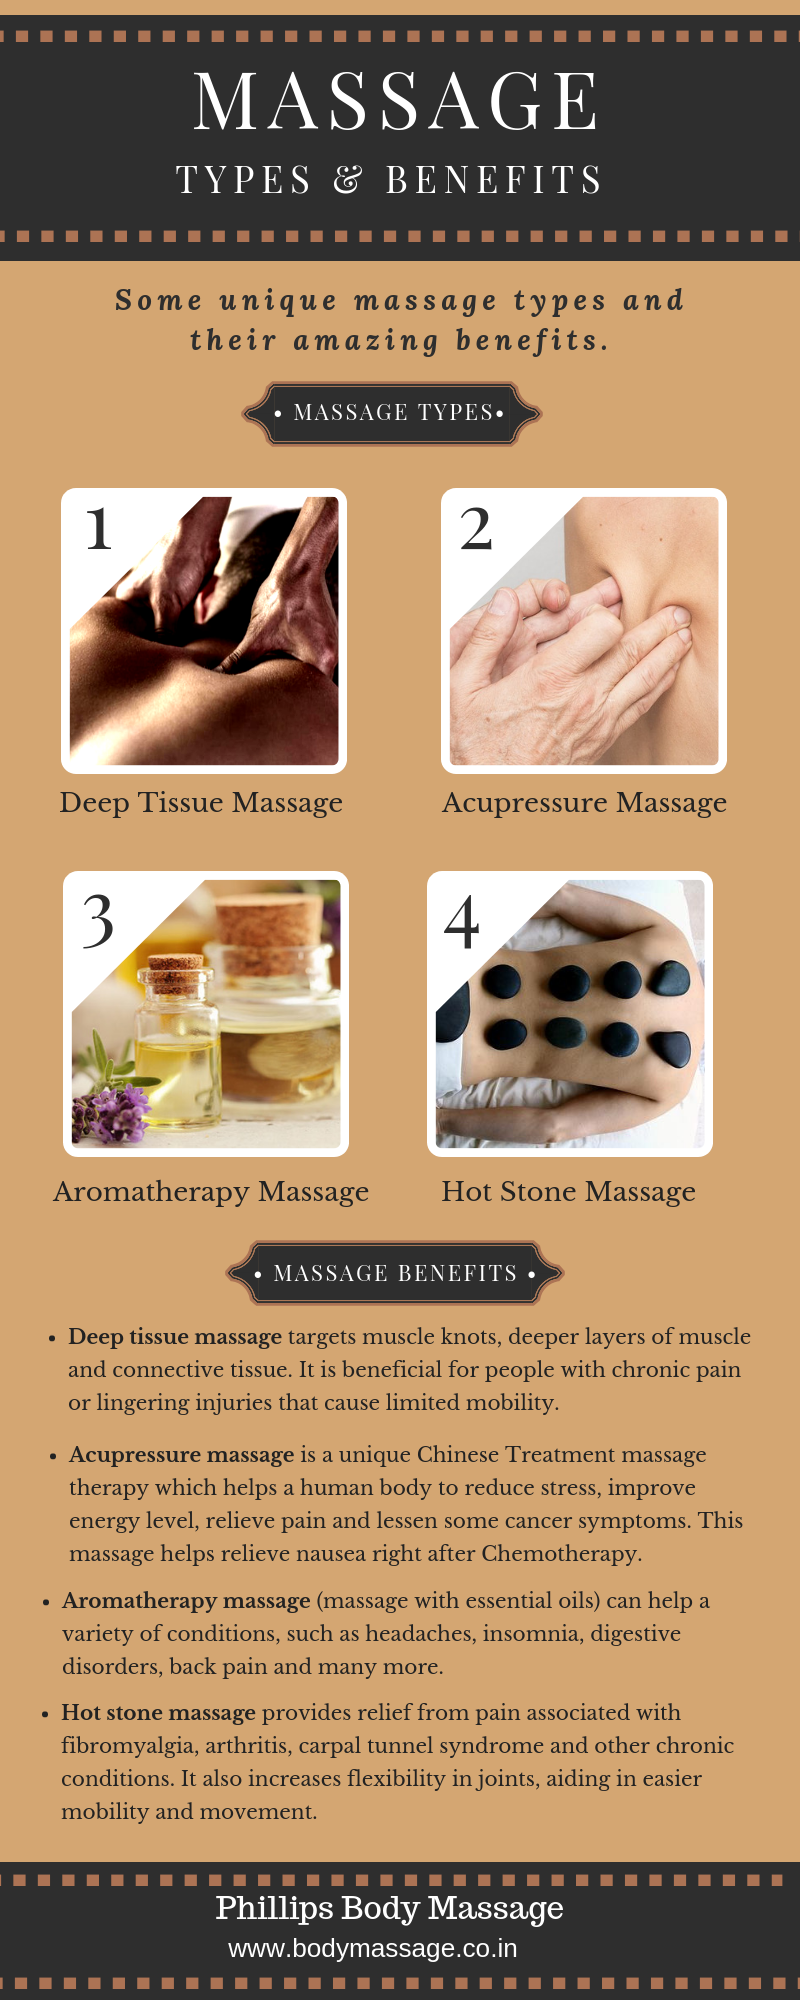 Types and Benefits of Body Massage